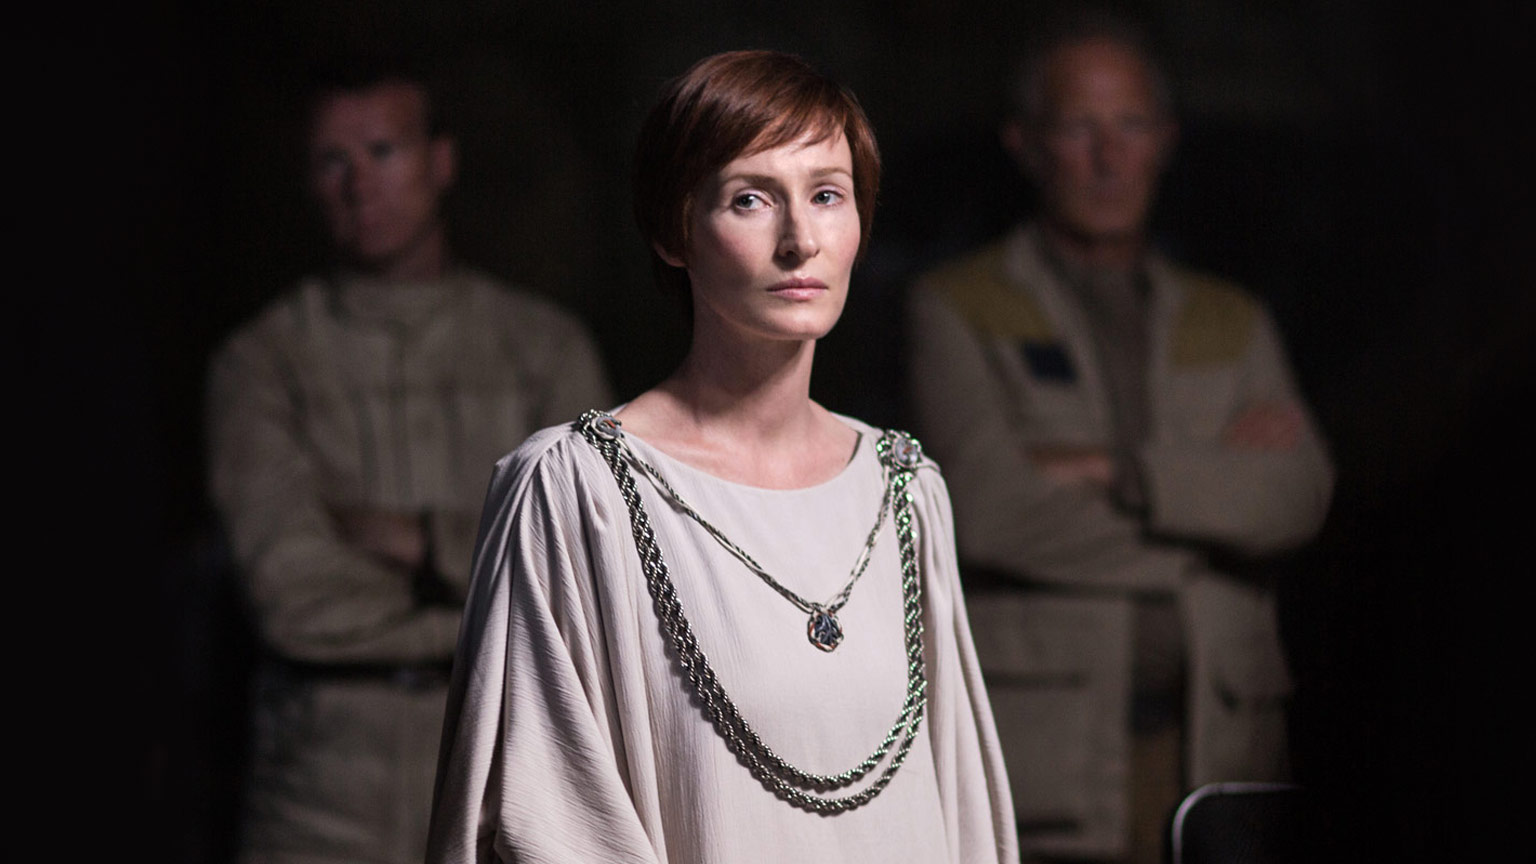 The Cassian Andor Star Wars Show Has Cast Two New Roles, Including Mon Mothma